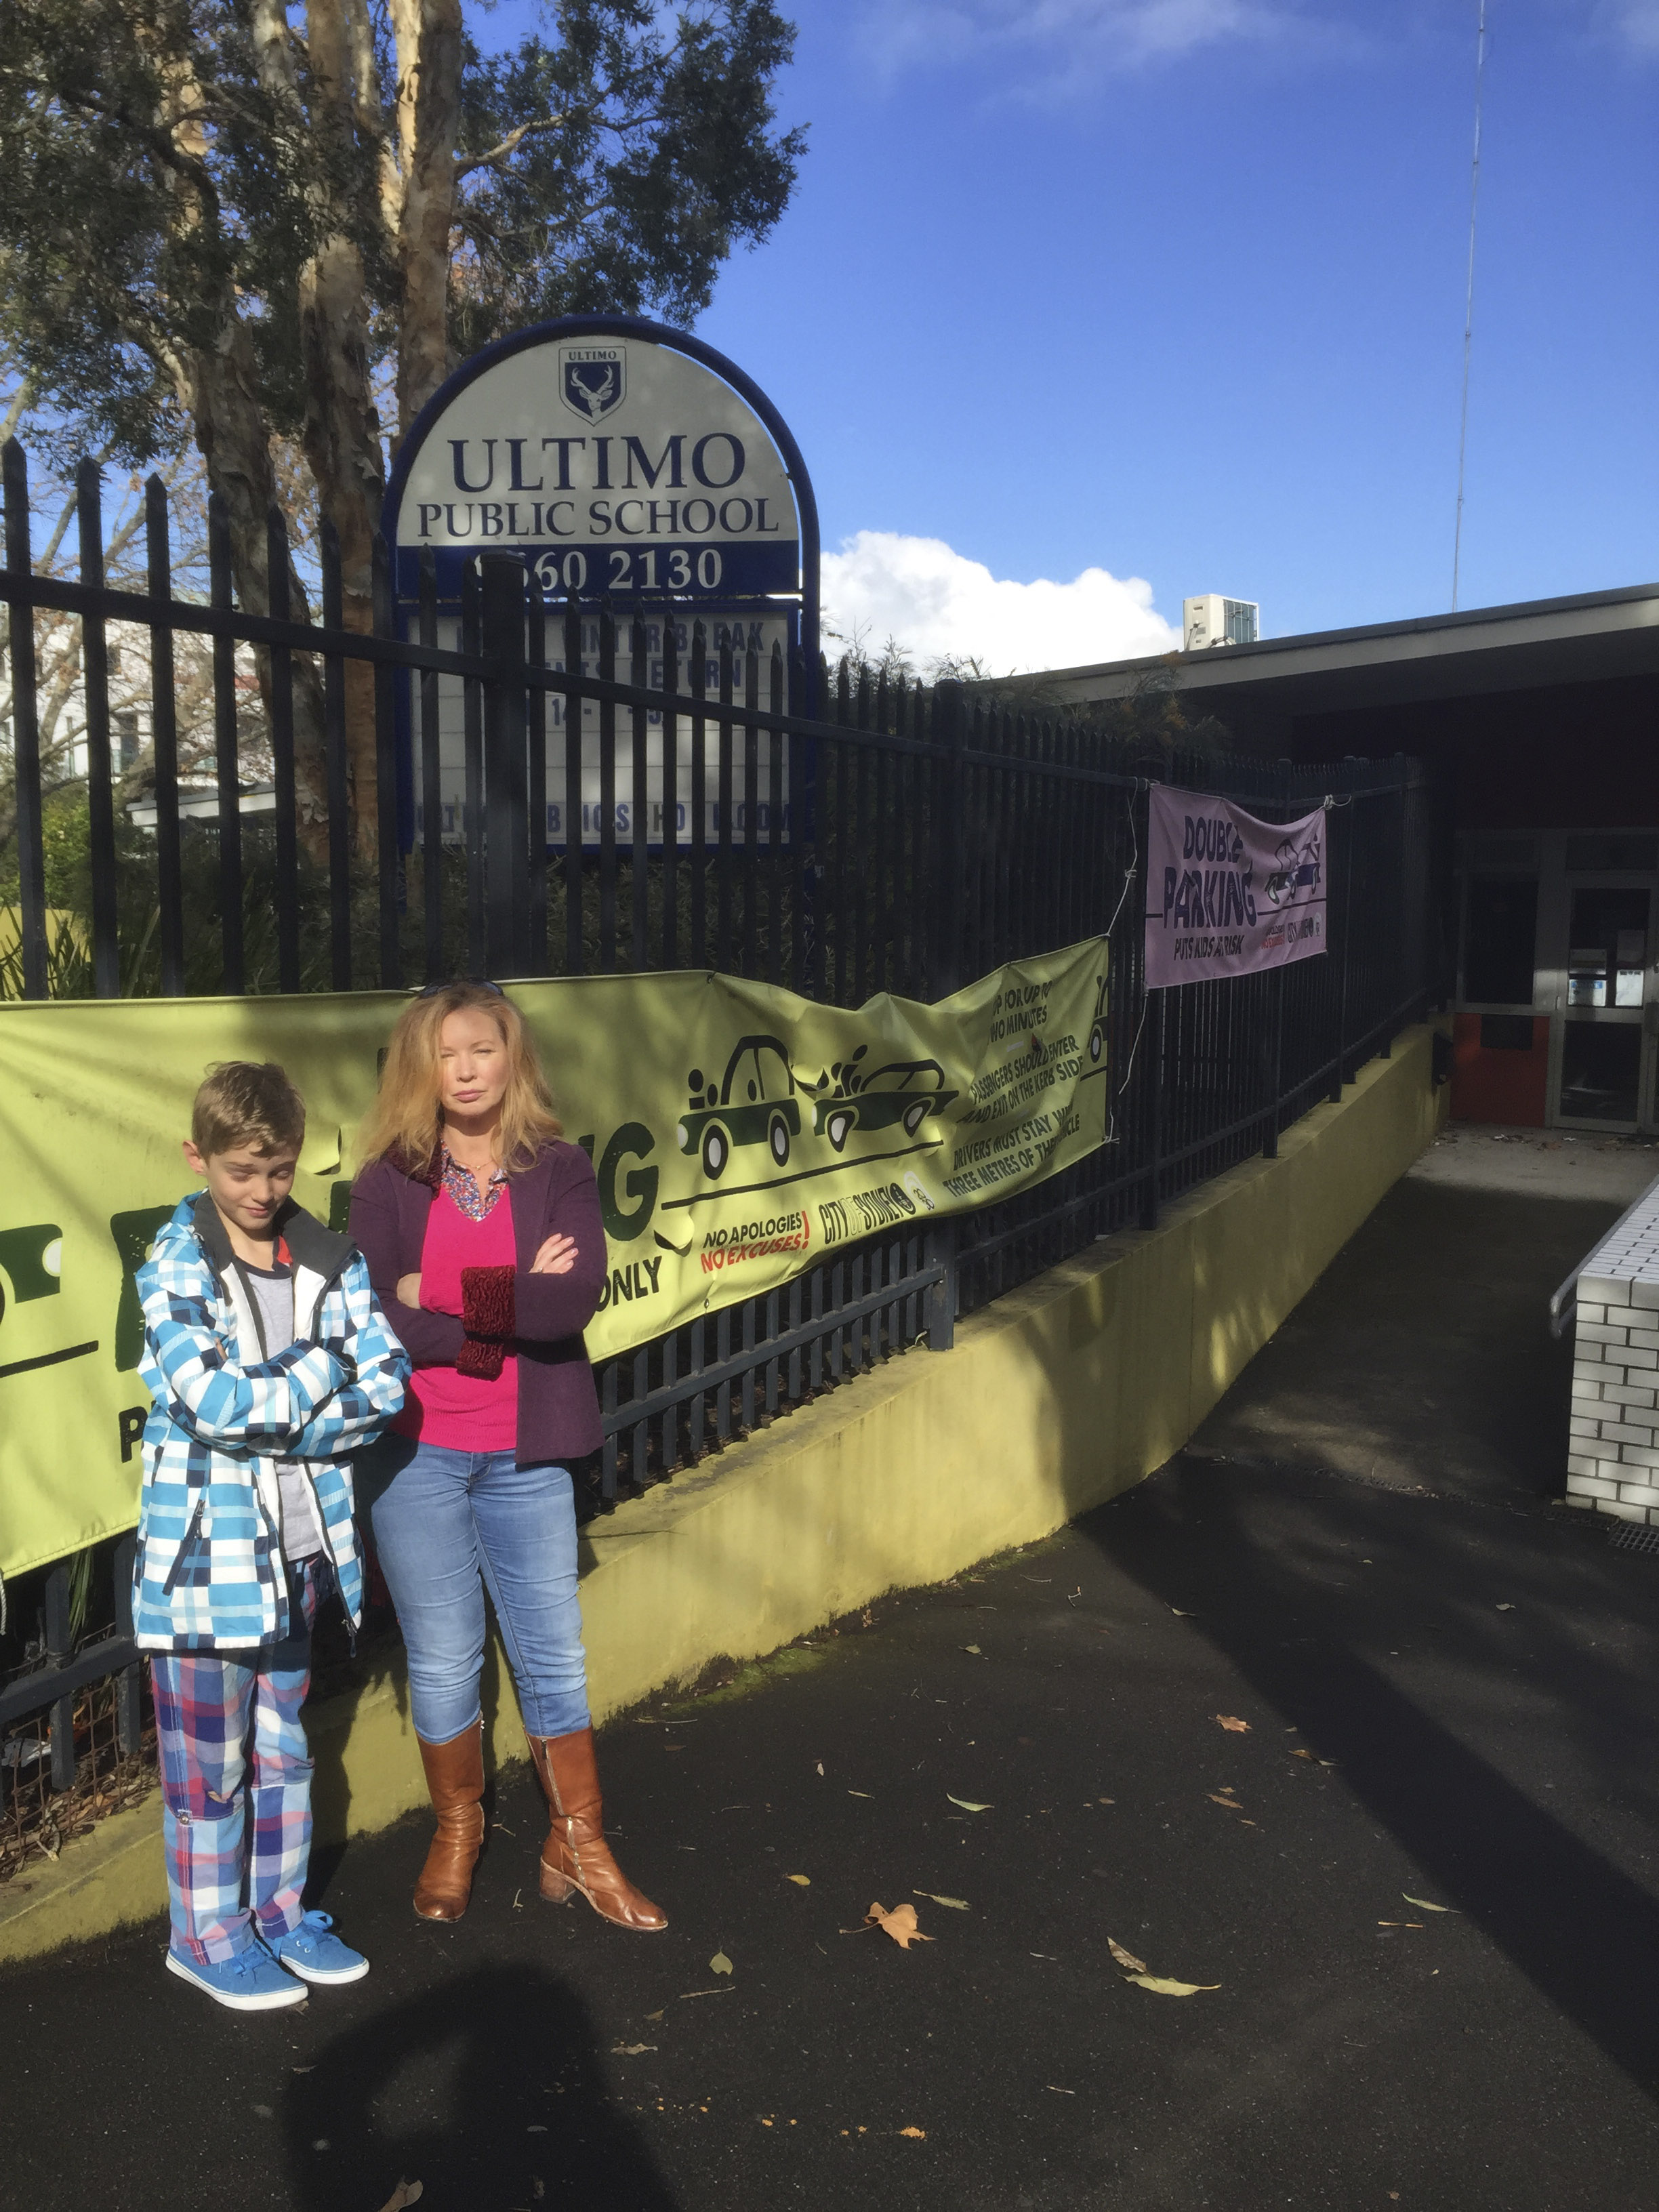 Ultimo Public School left in the lurch